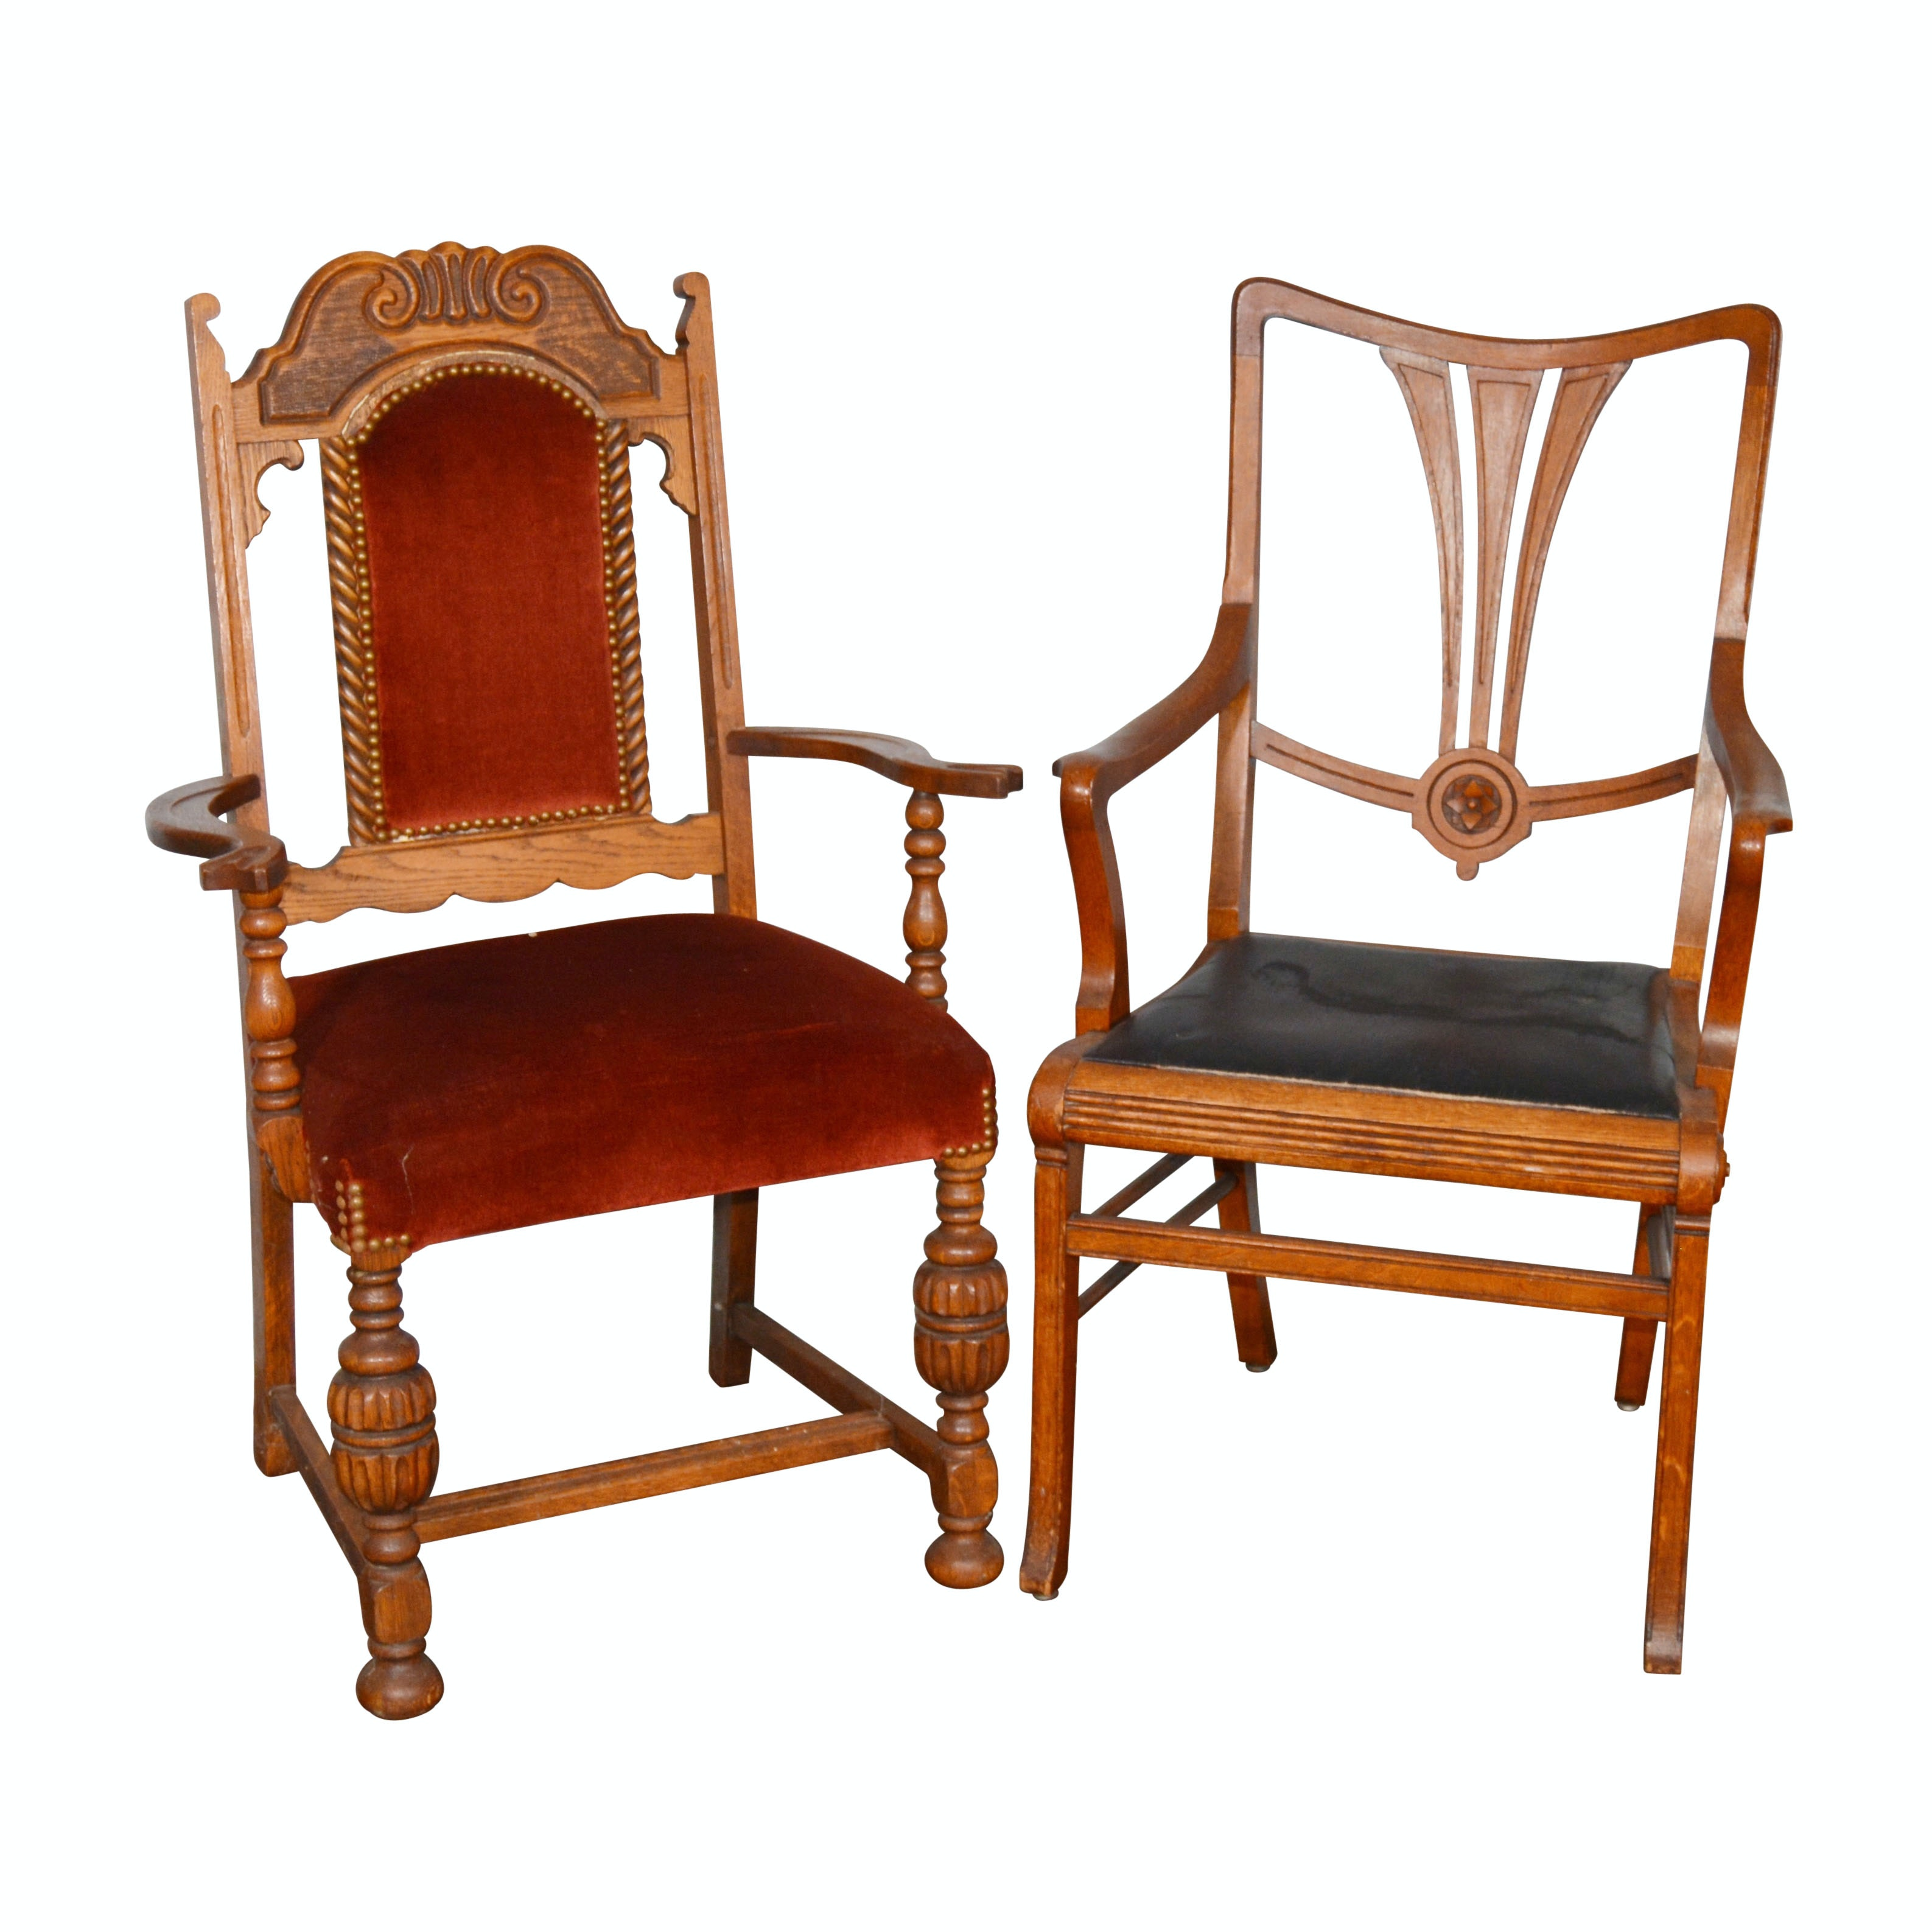 Two Oak Chairs, Late 19th Century/Early 20th Century